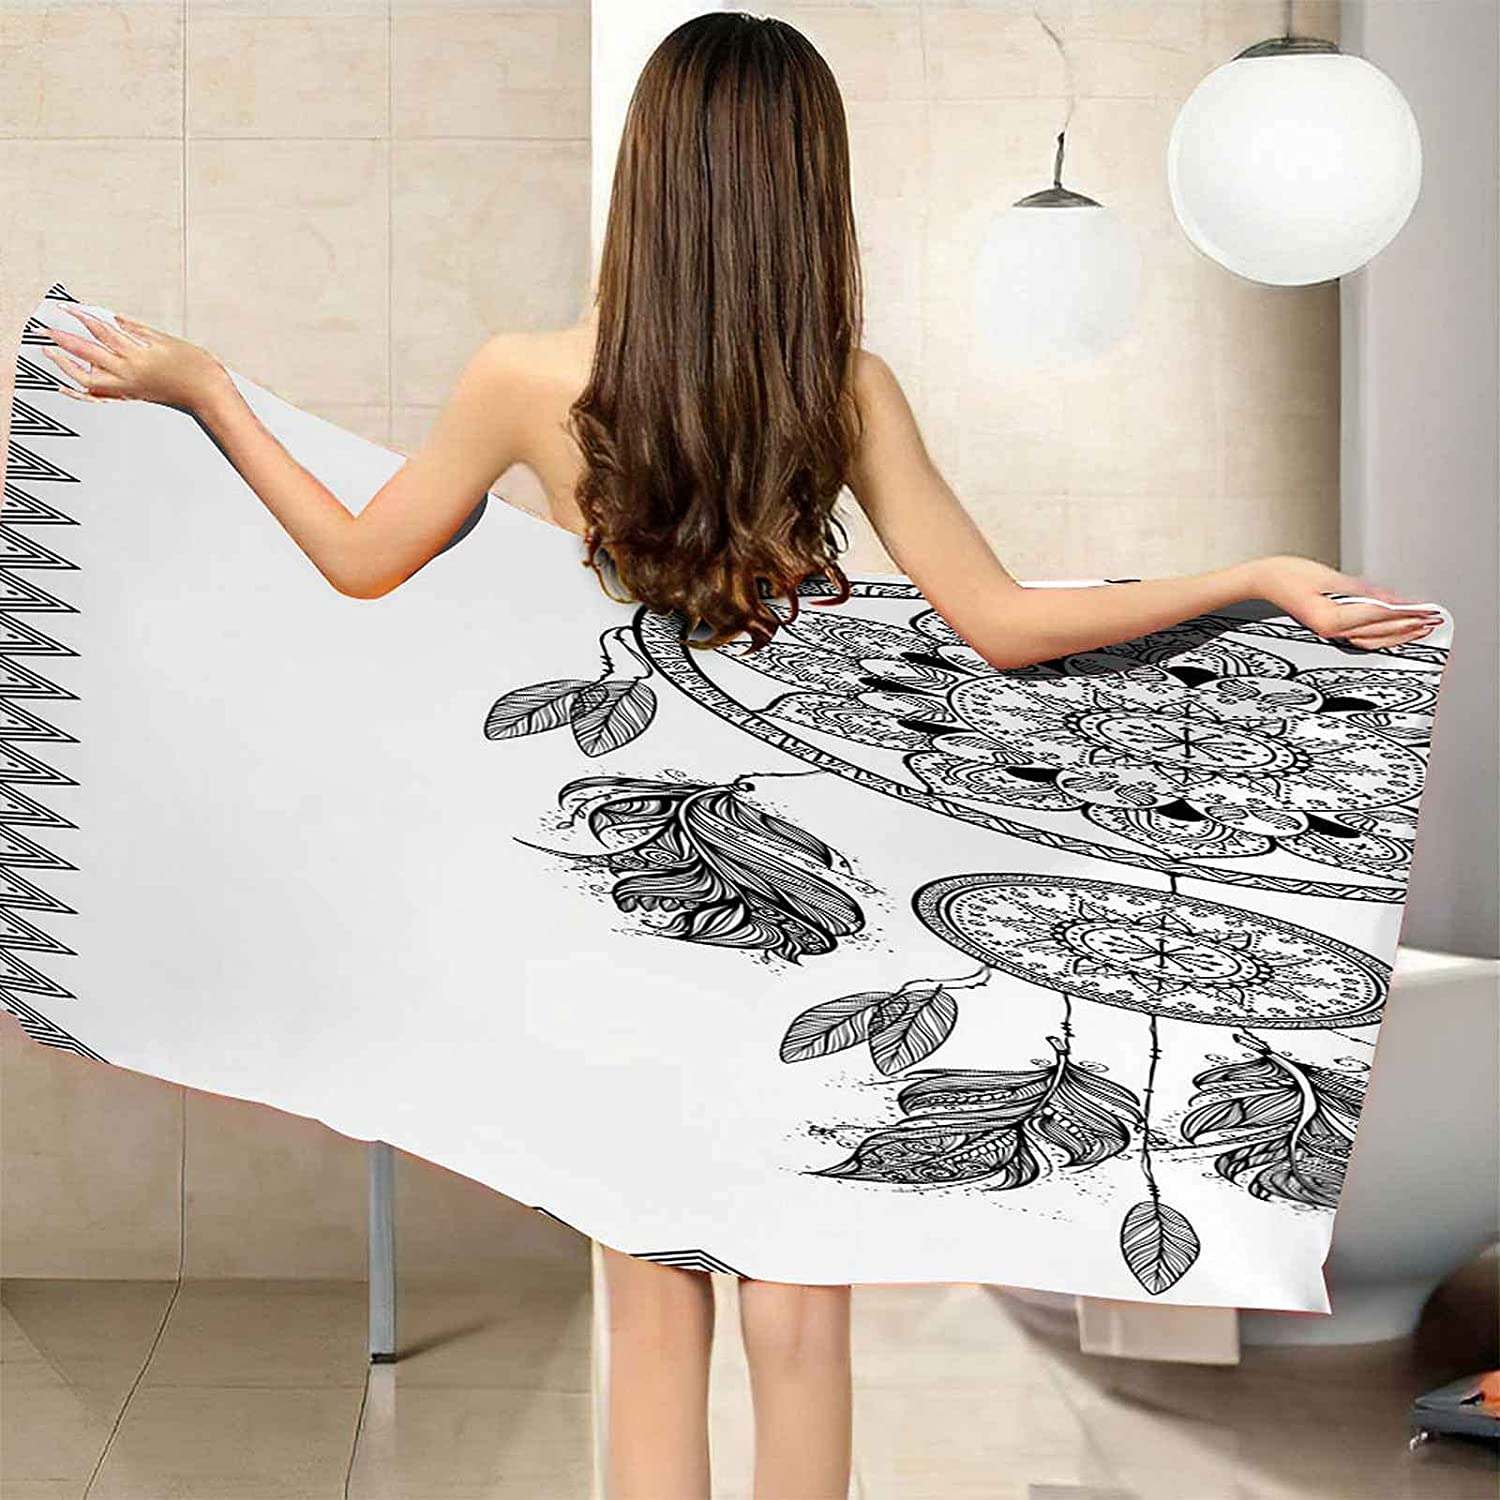 TFXDBZ Microfiber Beach Towels Floral 78.74x39.37 New mail order Feather 55% OFF Print